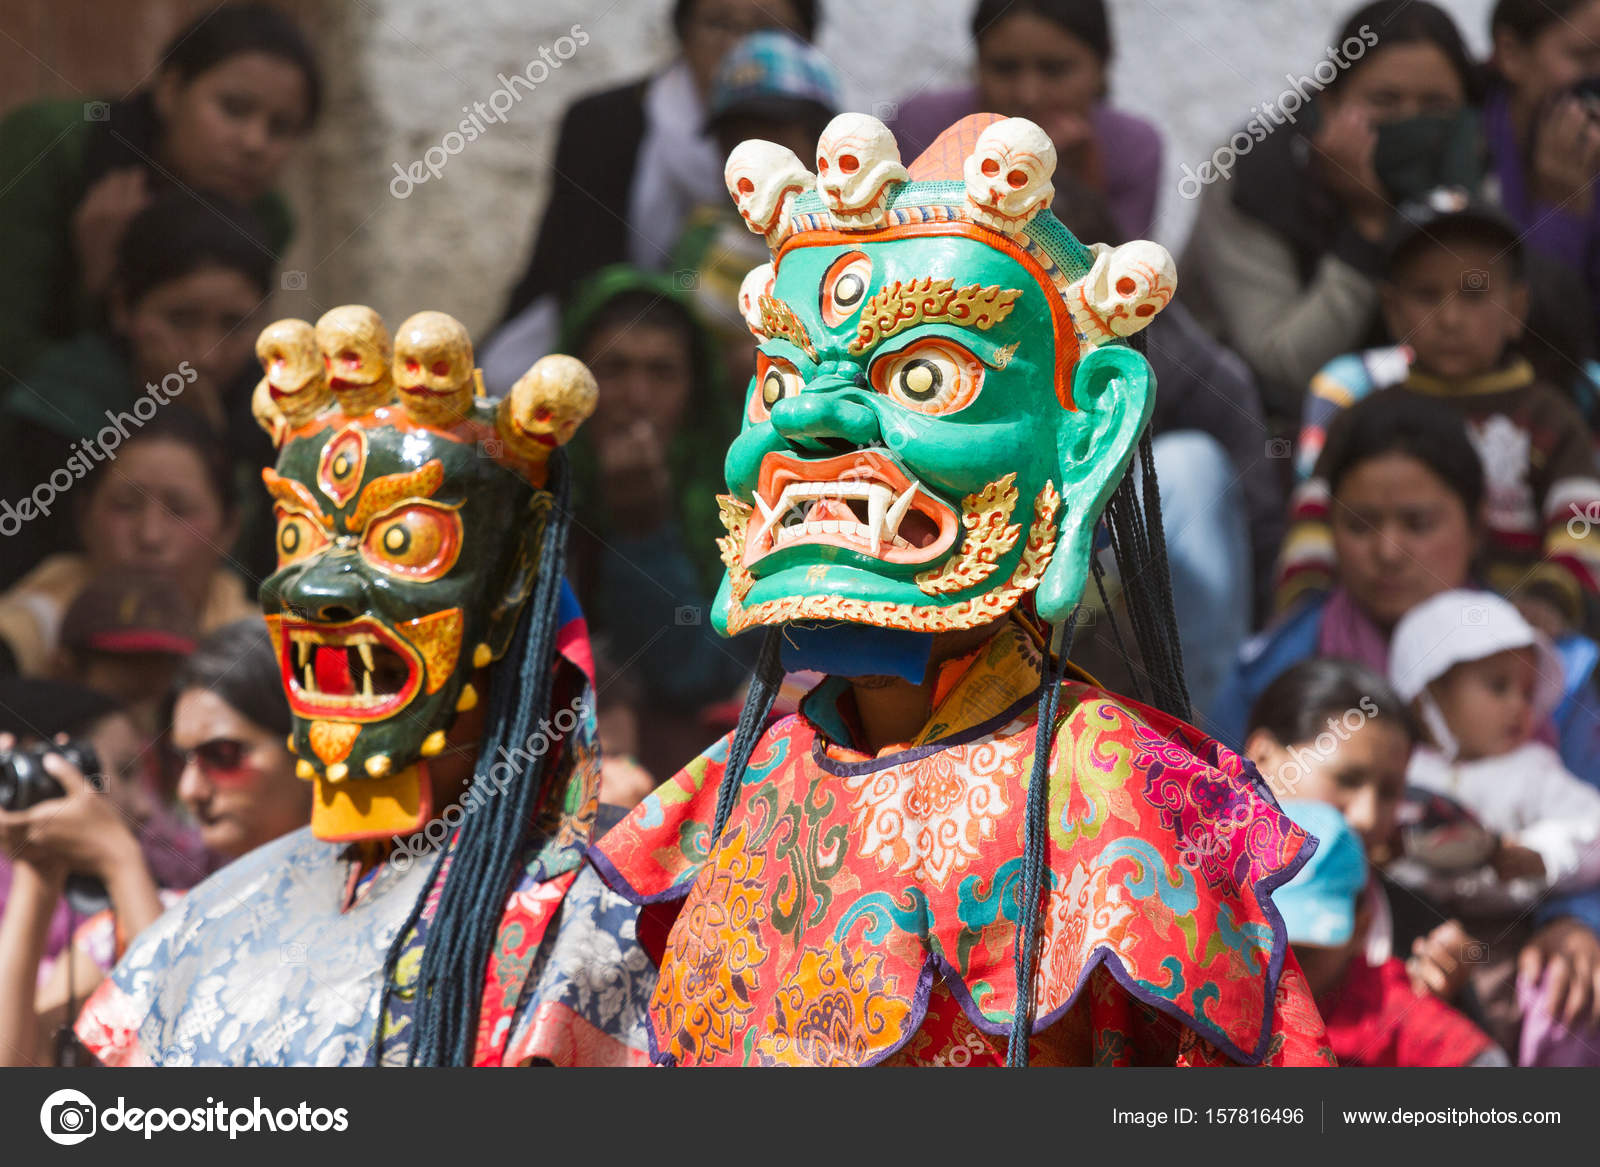 adf635cd7 Monk performs a religious mask dance of Tibetan Buddhism — Stock Photo